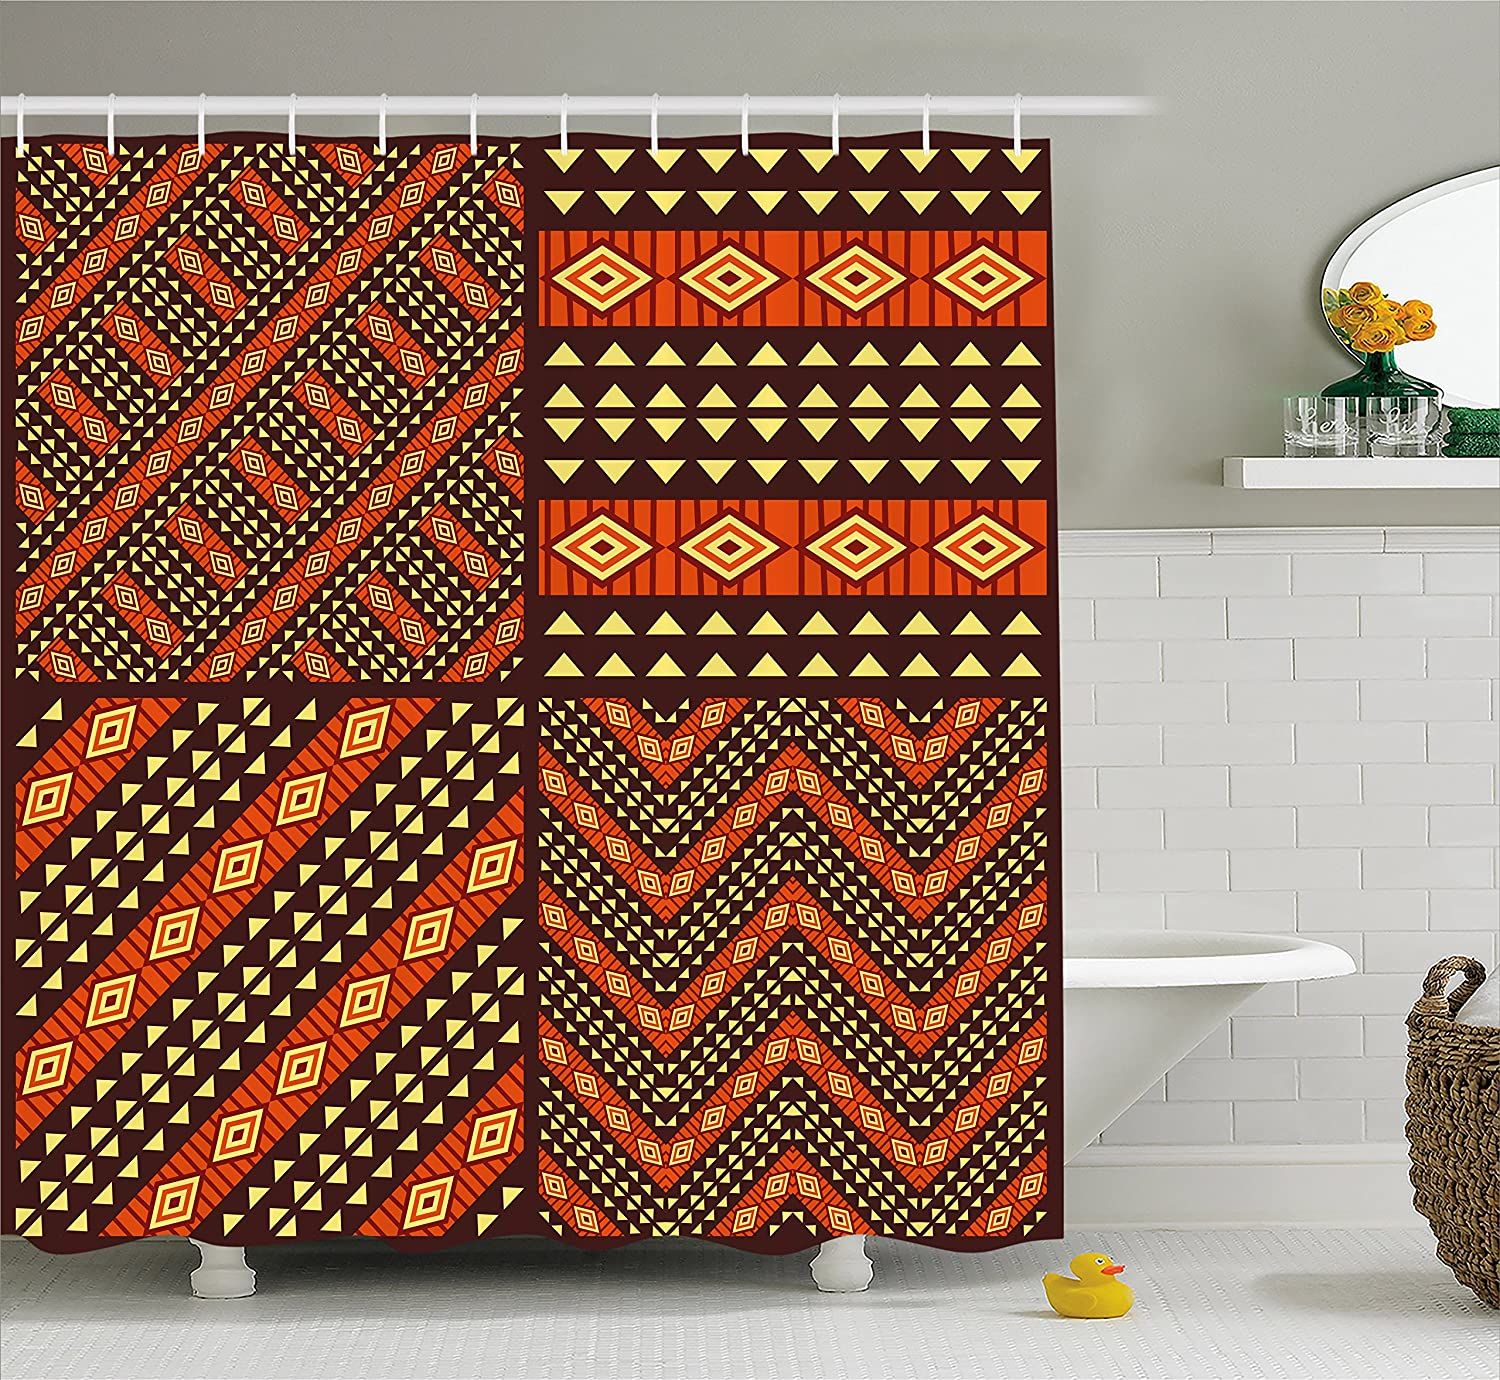 Ambesonne african shower curtain tribal african ethnic patterns traditional motifs geometric design artwork fabric bathroom decor set with hooks